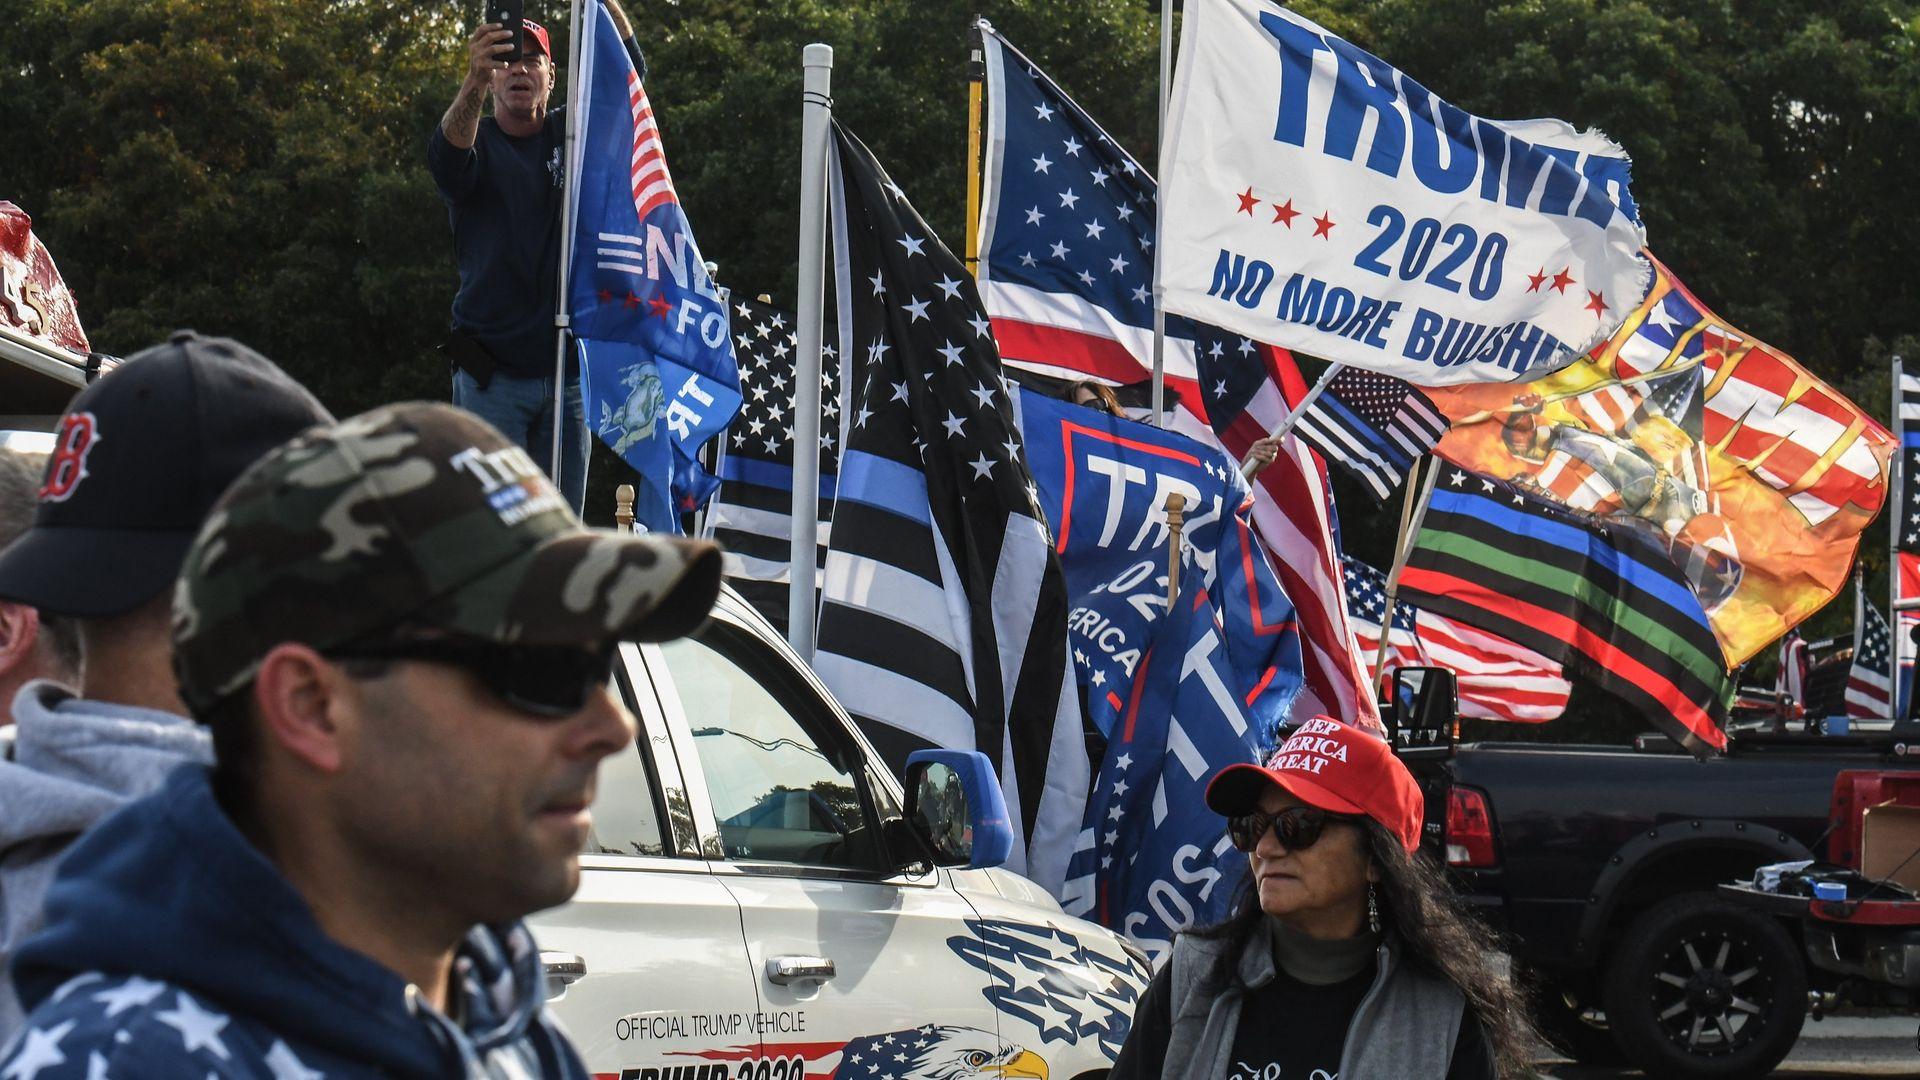 People participate in a pro-Trump rally on October 11, 2020 in Ronkonkoma, New York.  (Photo by Stephanie Keith/Getty Images) - Credit: Getty Images